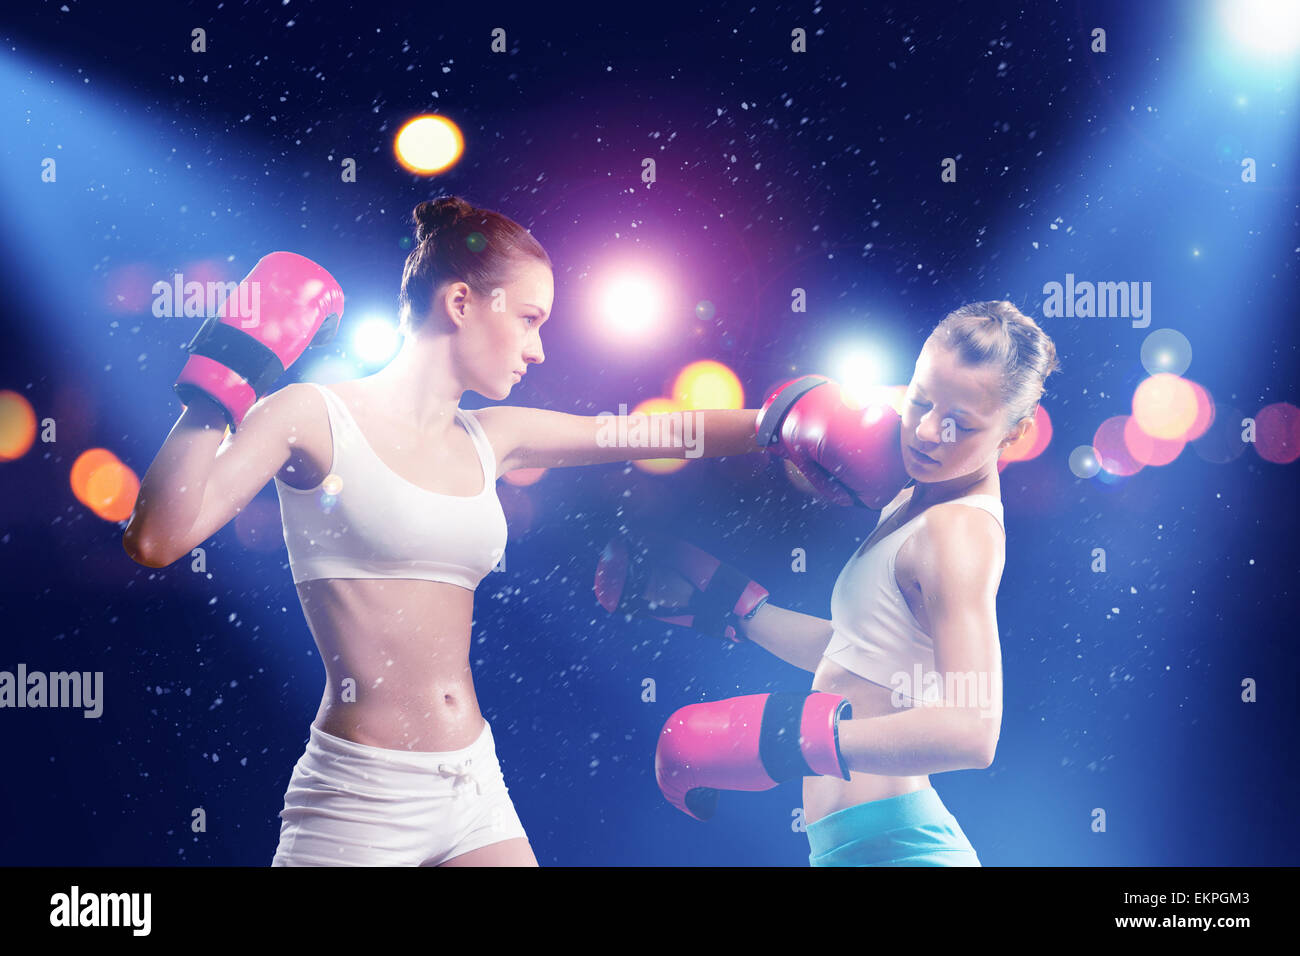 two pretty women boxing stock photo: 81015987 - alamy